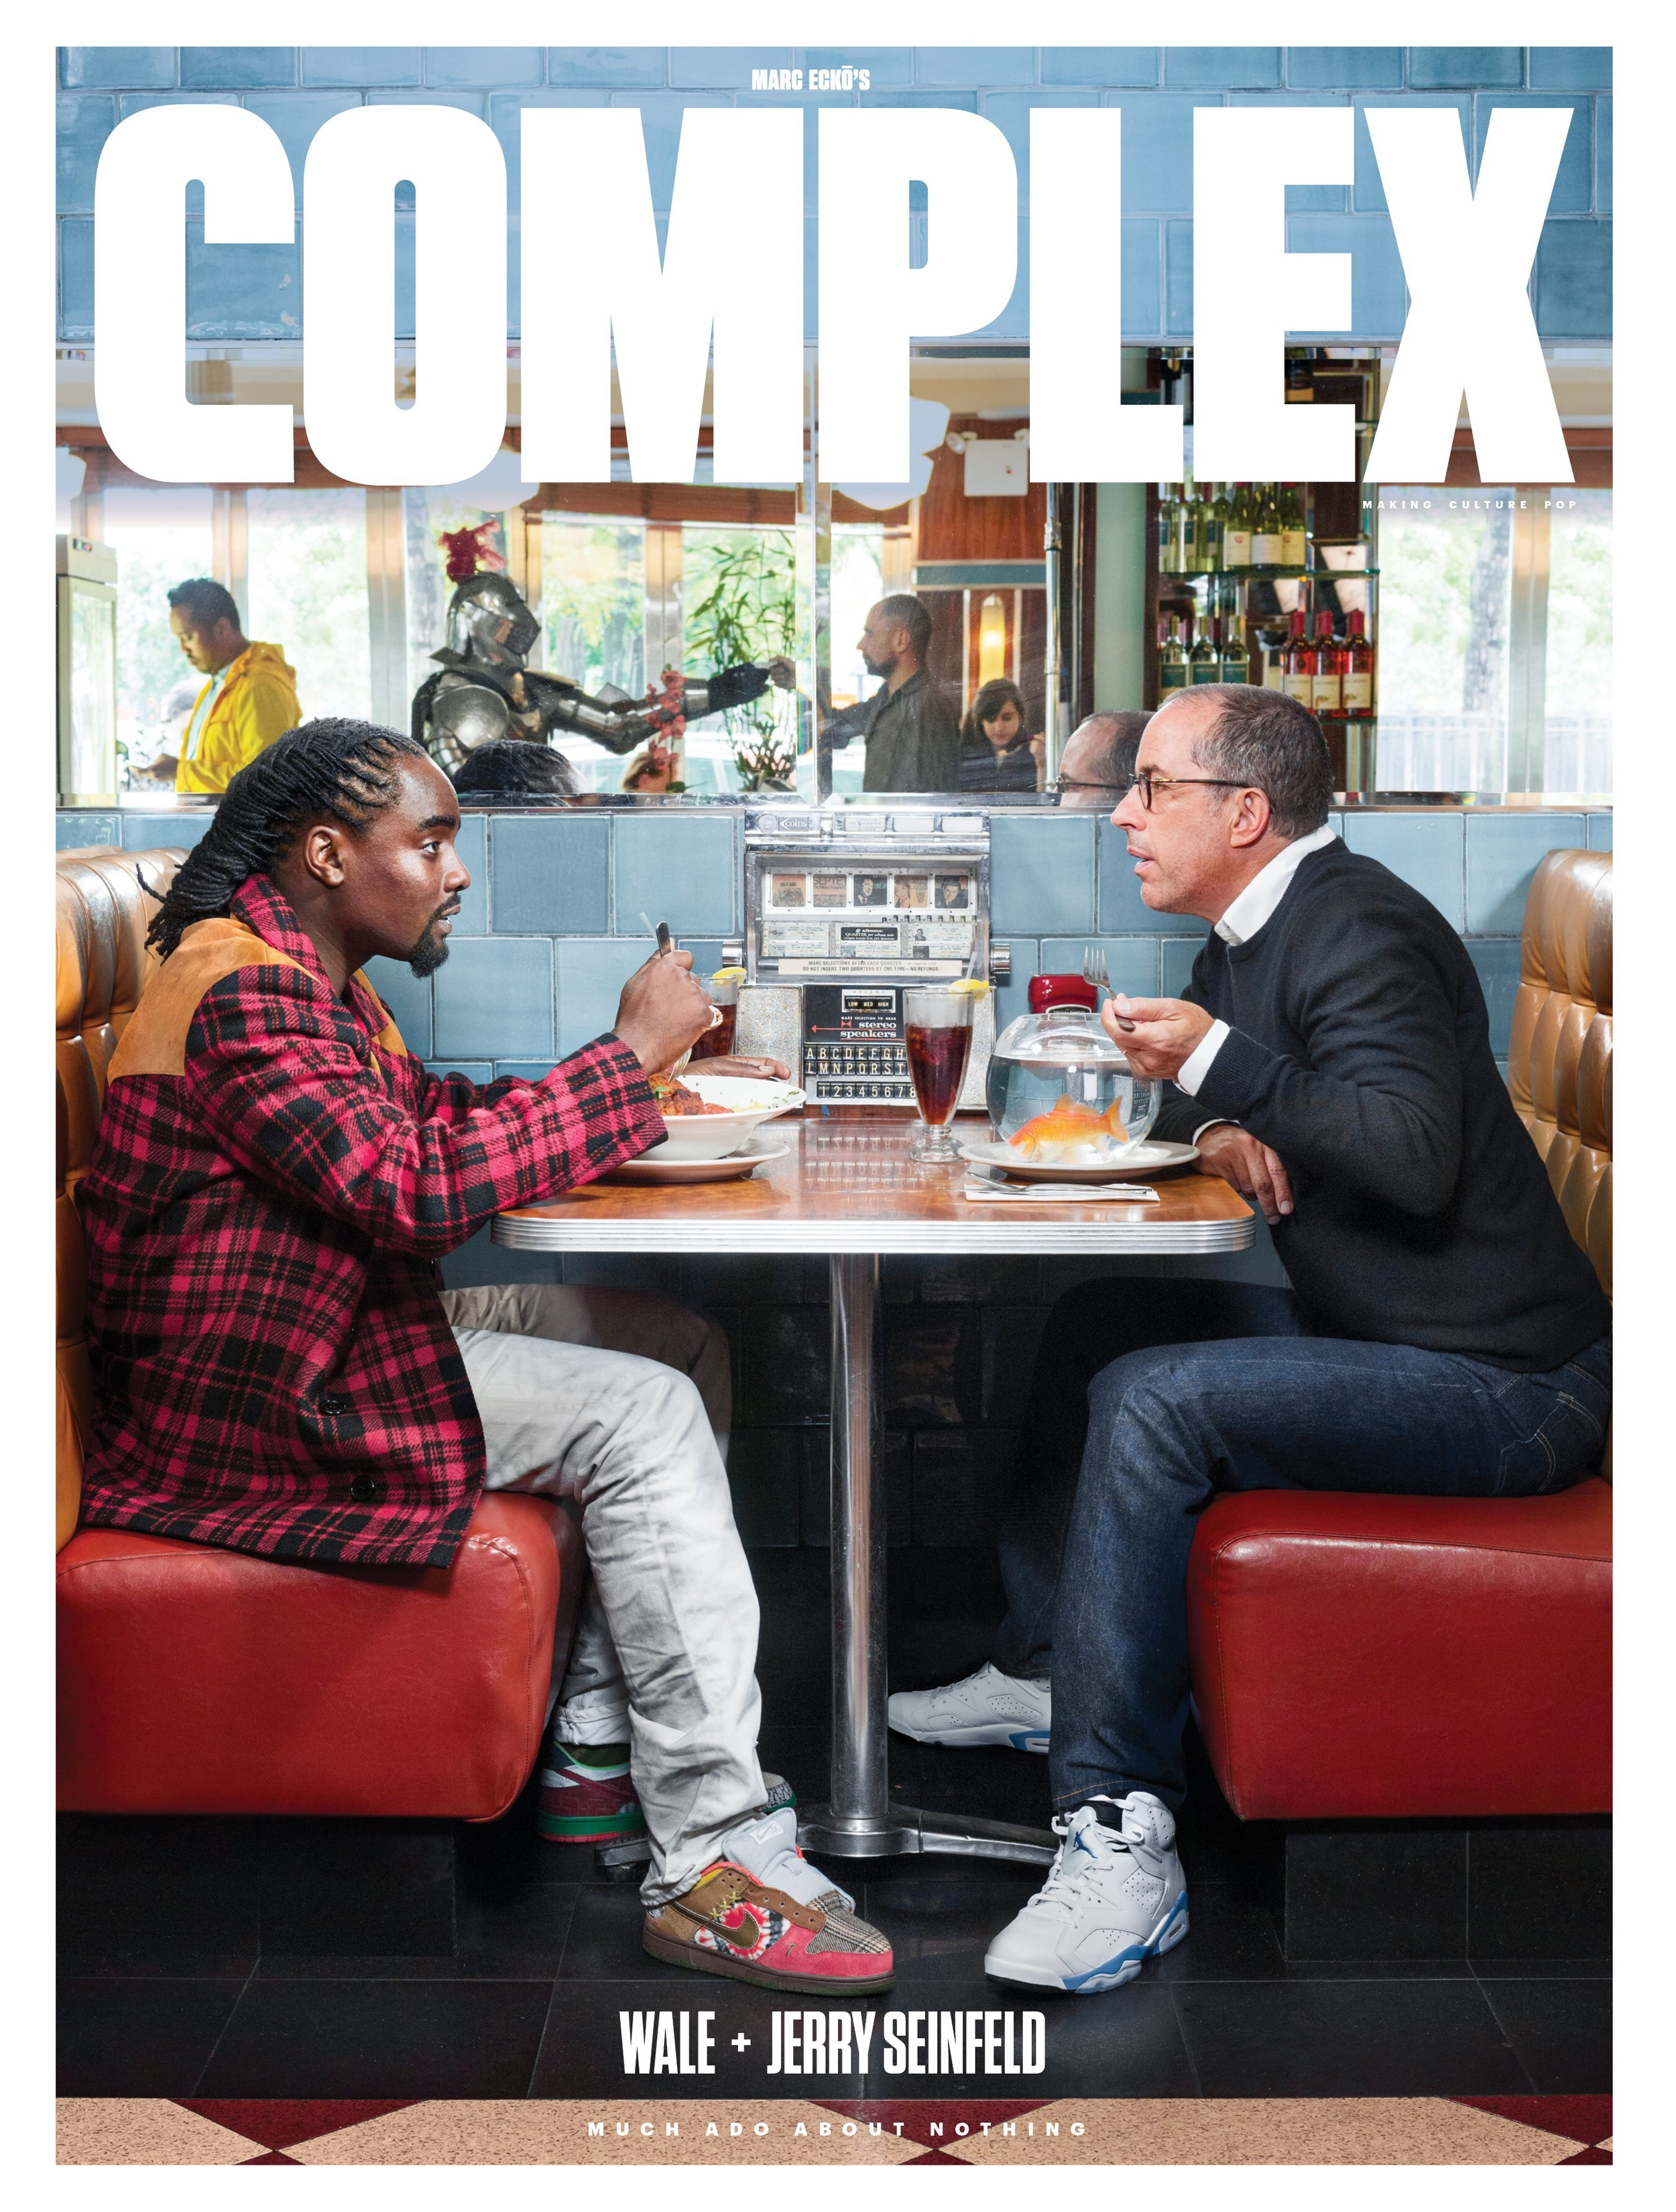 In Complex Magazines December 2014/January 2015 Cover Story, Wale and Jerry Seinfeld a wide array of subjects including sneakers.  Wale can be seen here wearing the Nike SB classic, the What the Dunks while Jerry can be seen rocking a pair of Air Jordan Sport Blue 6's gifted to him by Wale.